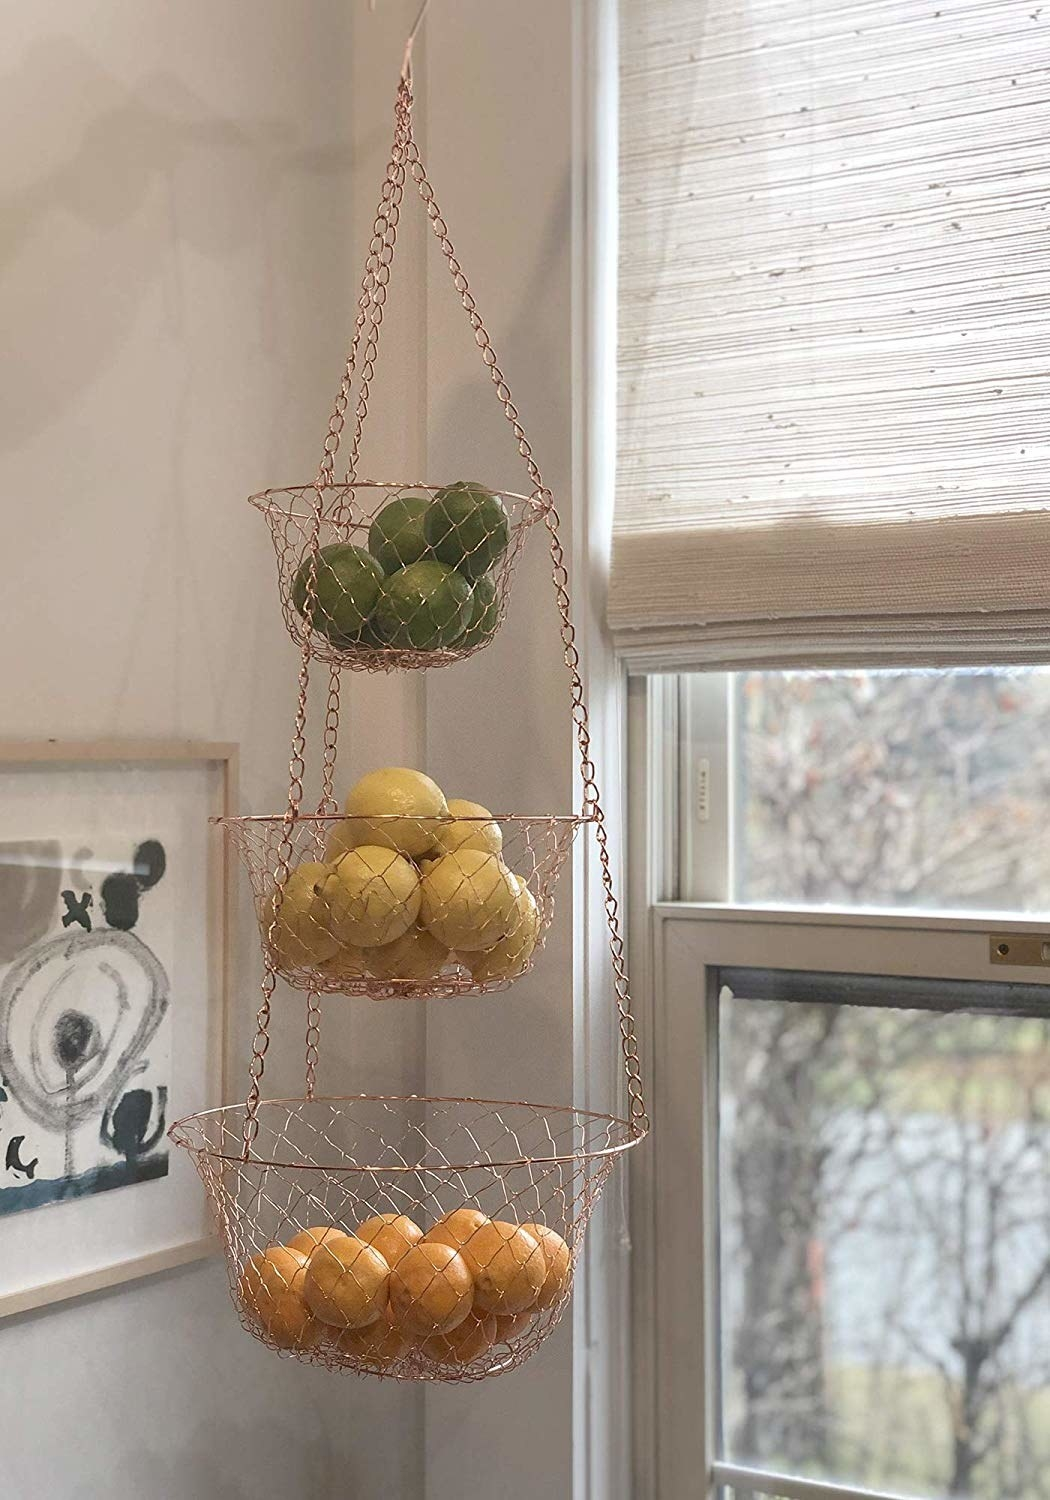 Copper three tier hanging fruit baskets